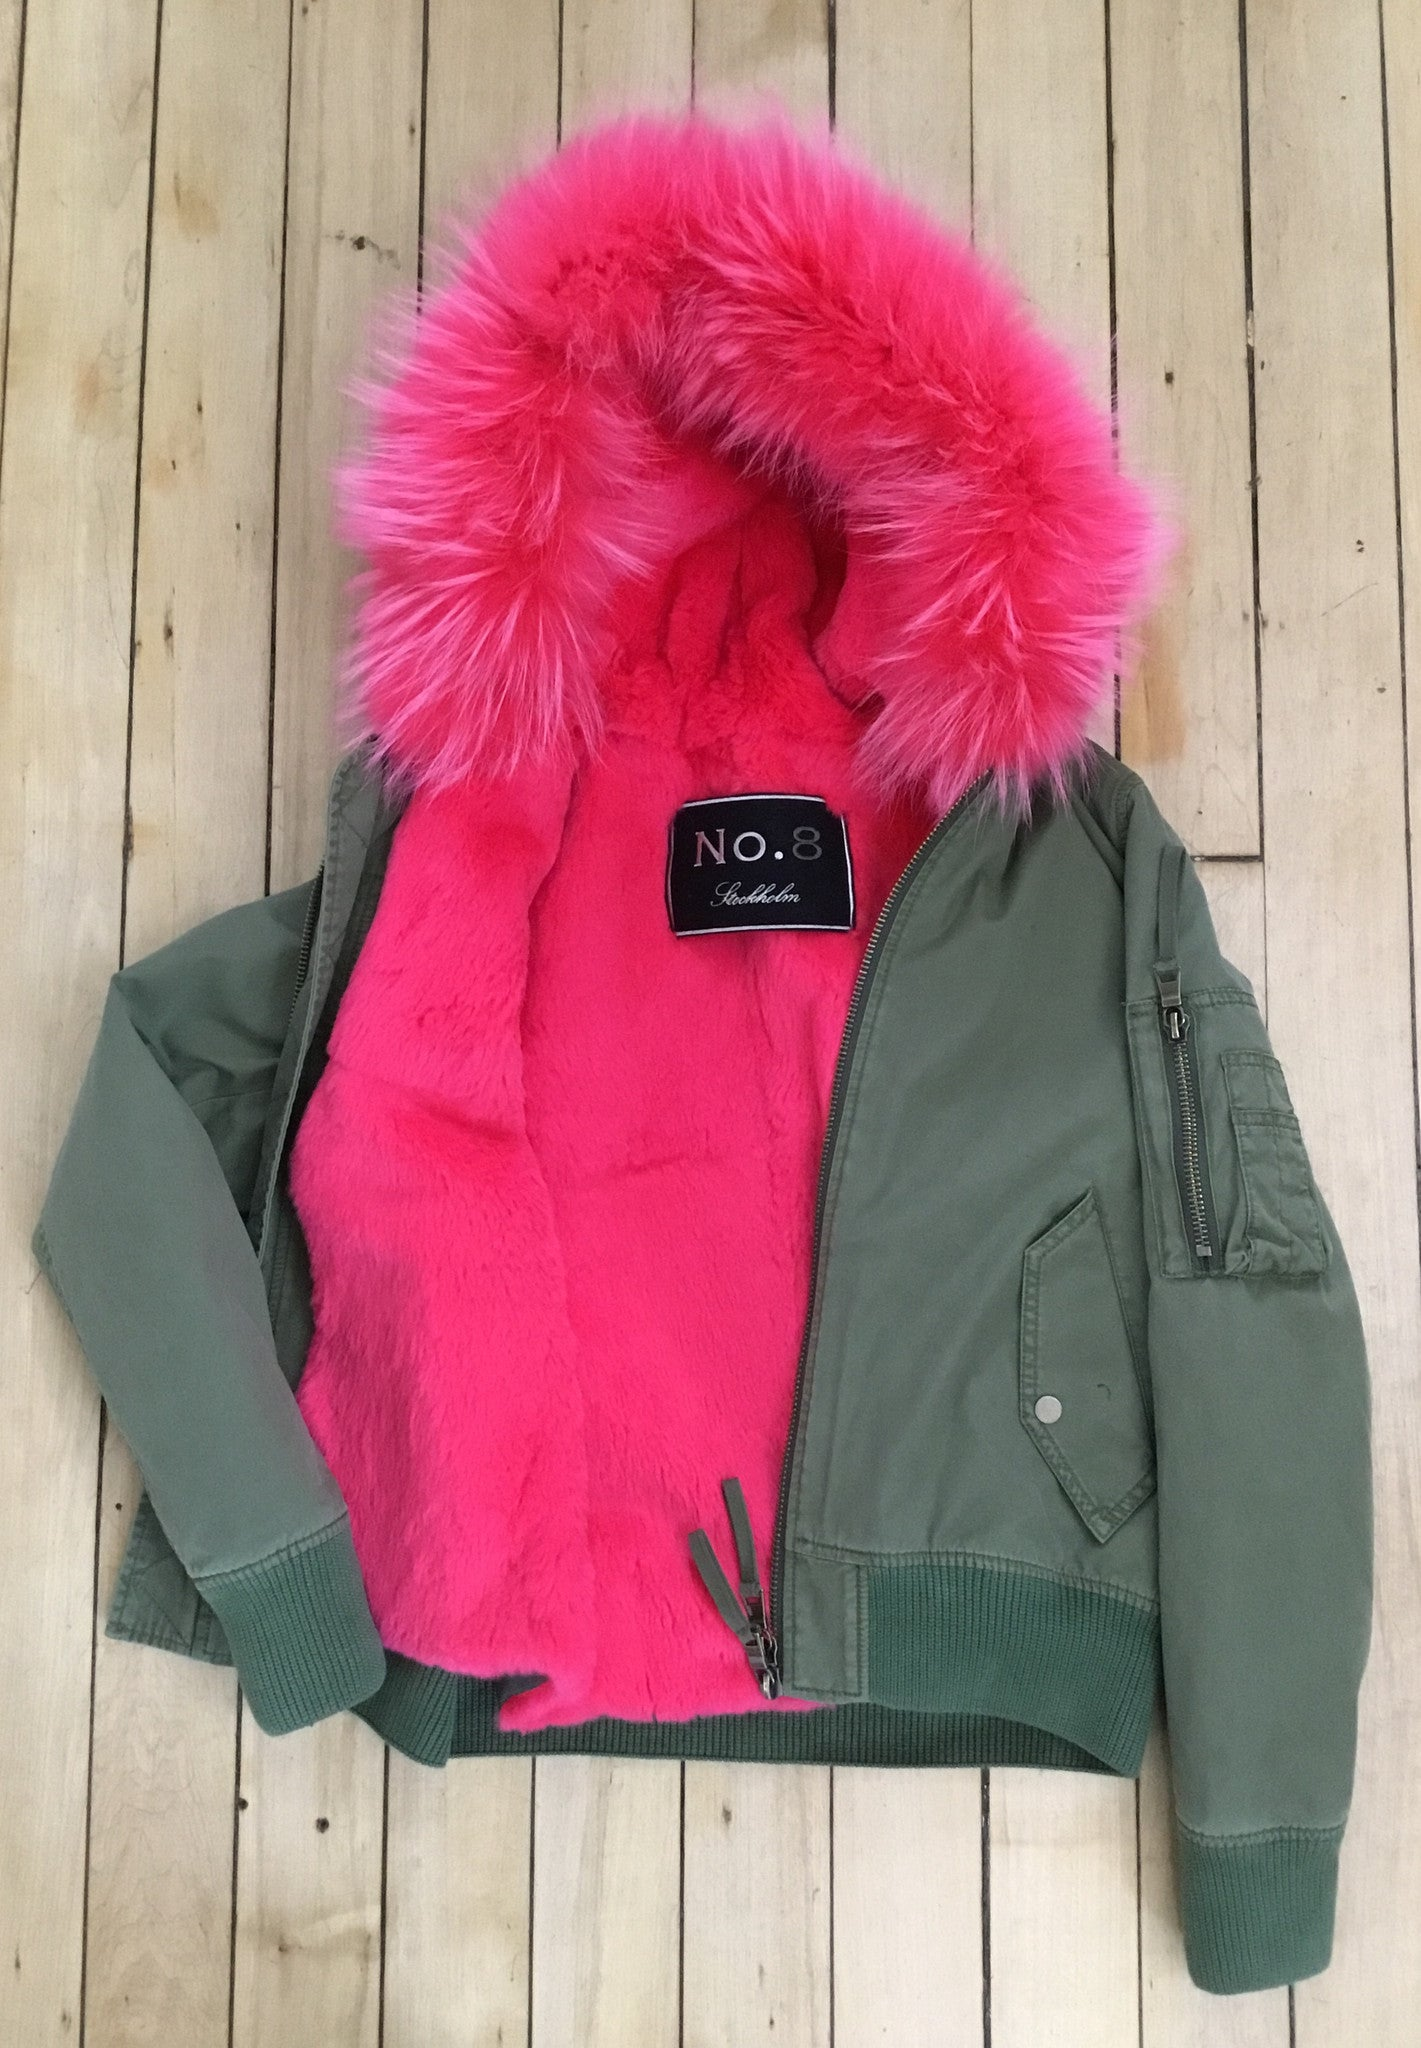 Blonde No. 8 baltimore kaki bomber with hot pink fur